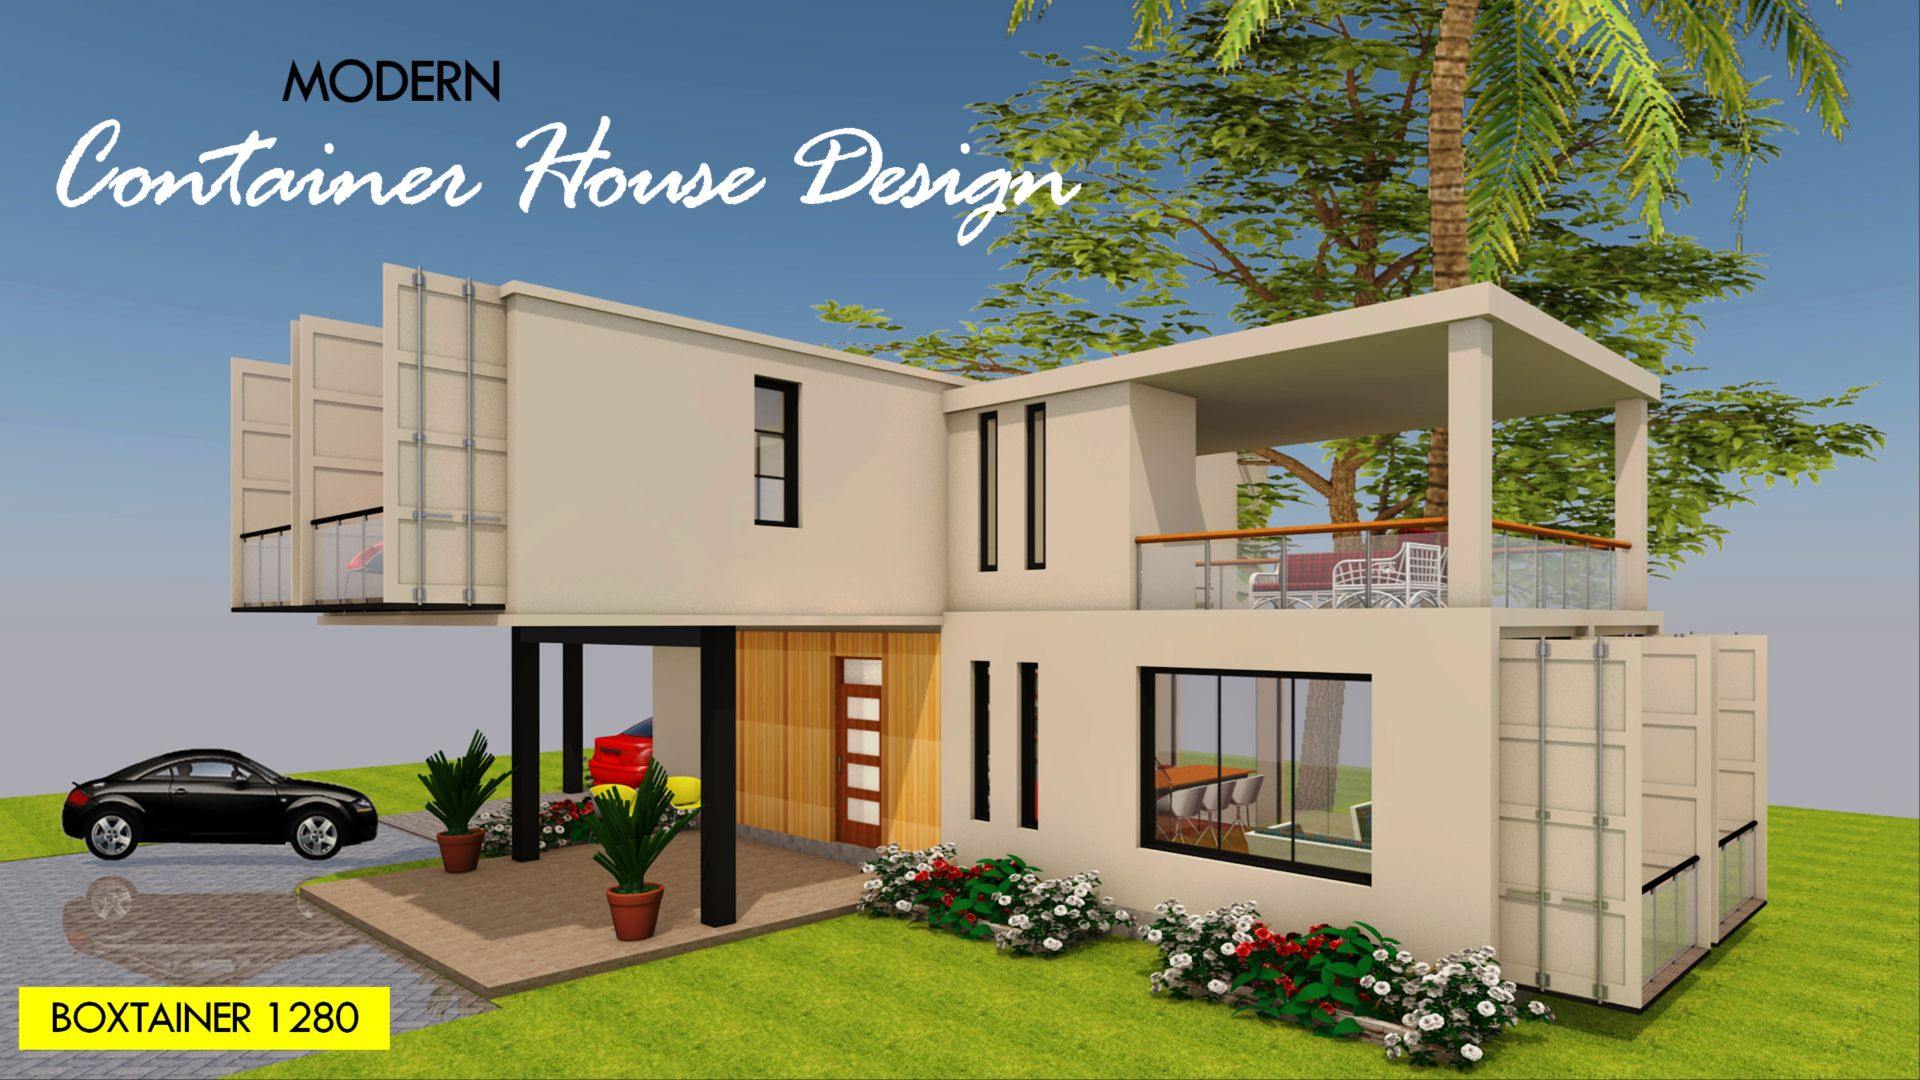 Modern Shipping Container Home boxtainer 1280x | id. s24311280x | 4 beds | 3 baths | 1280+sft.|